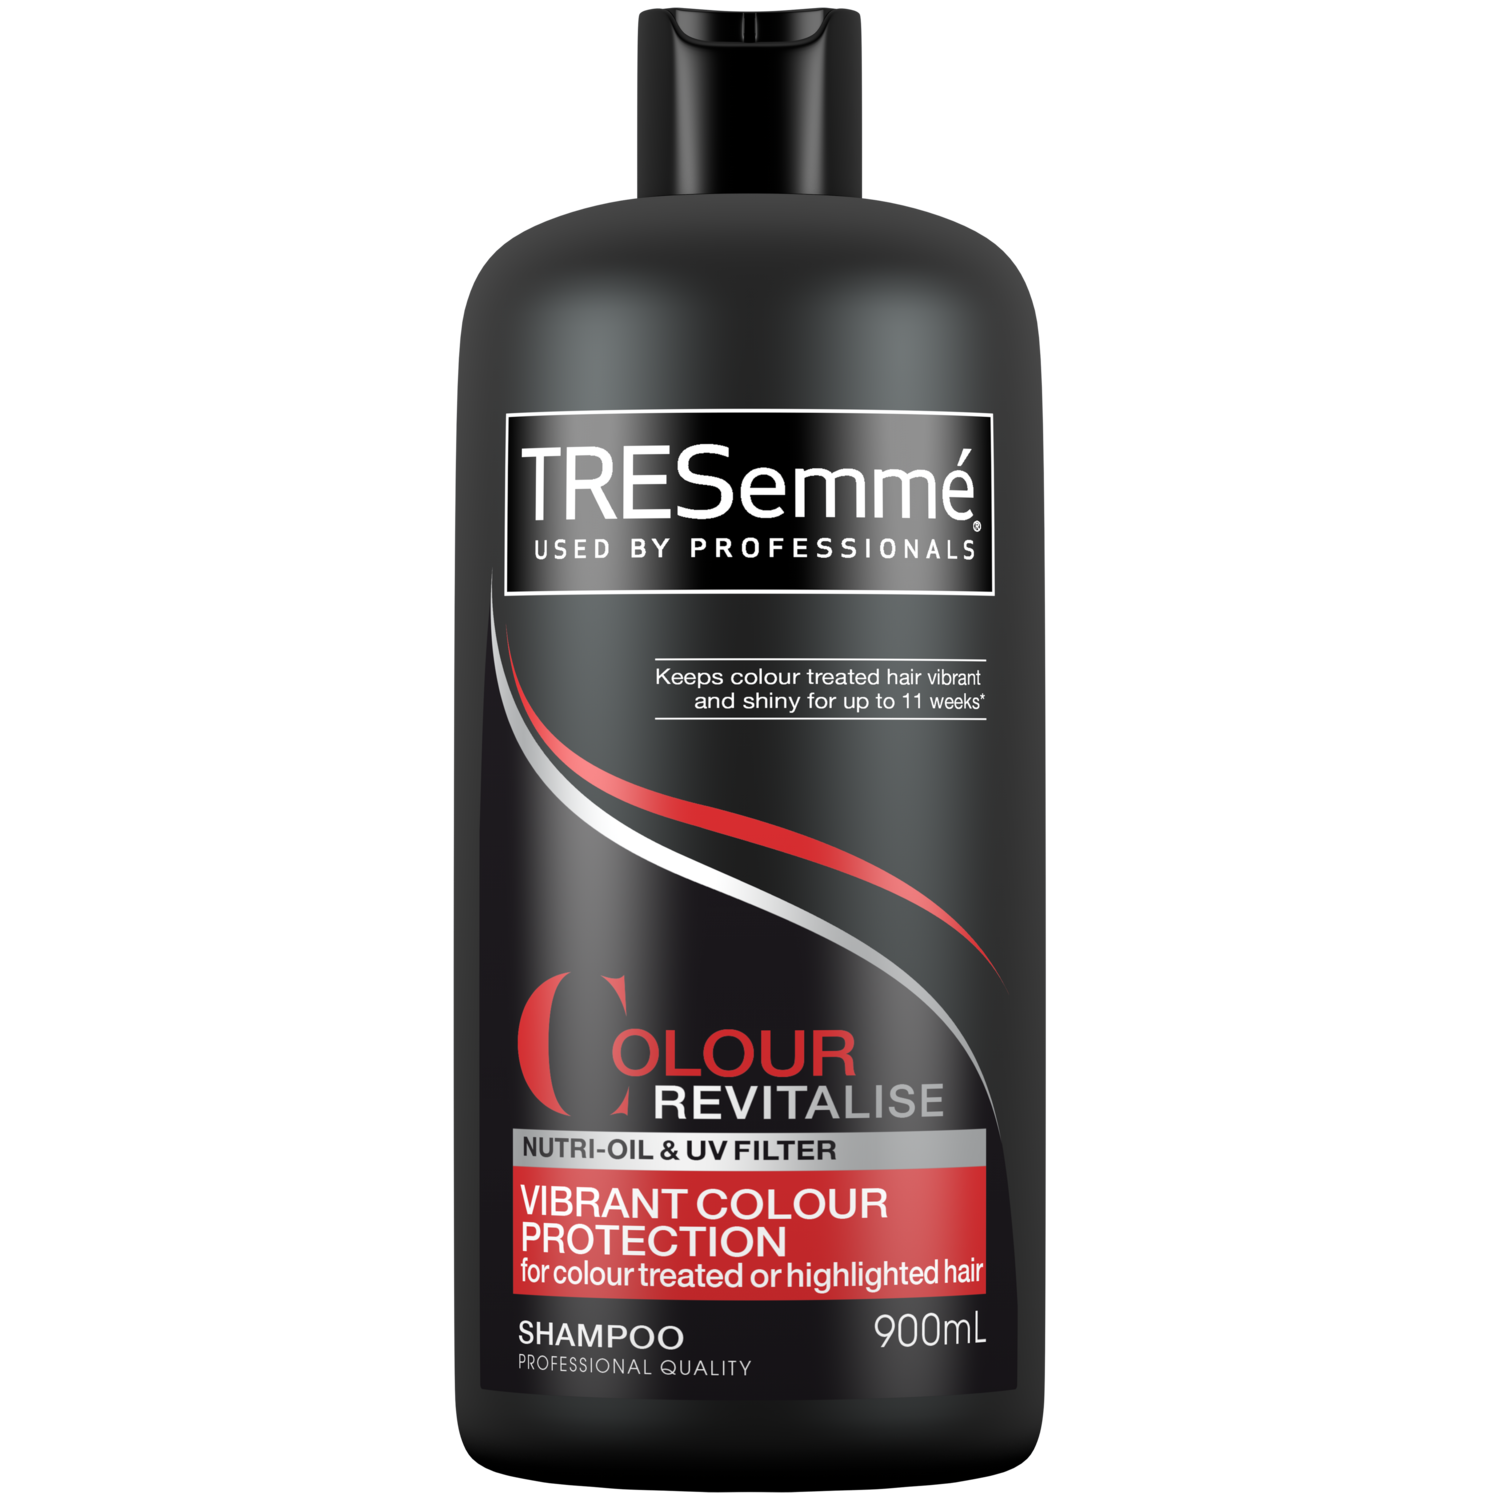 Tresemm Shampoo For Colour Treated Hair Revitalise Vibrance